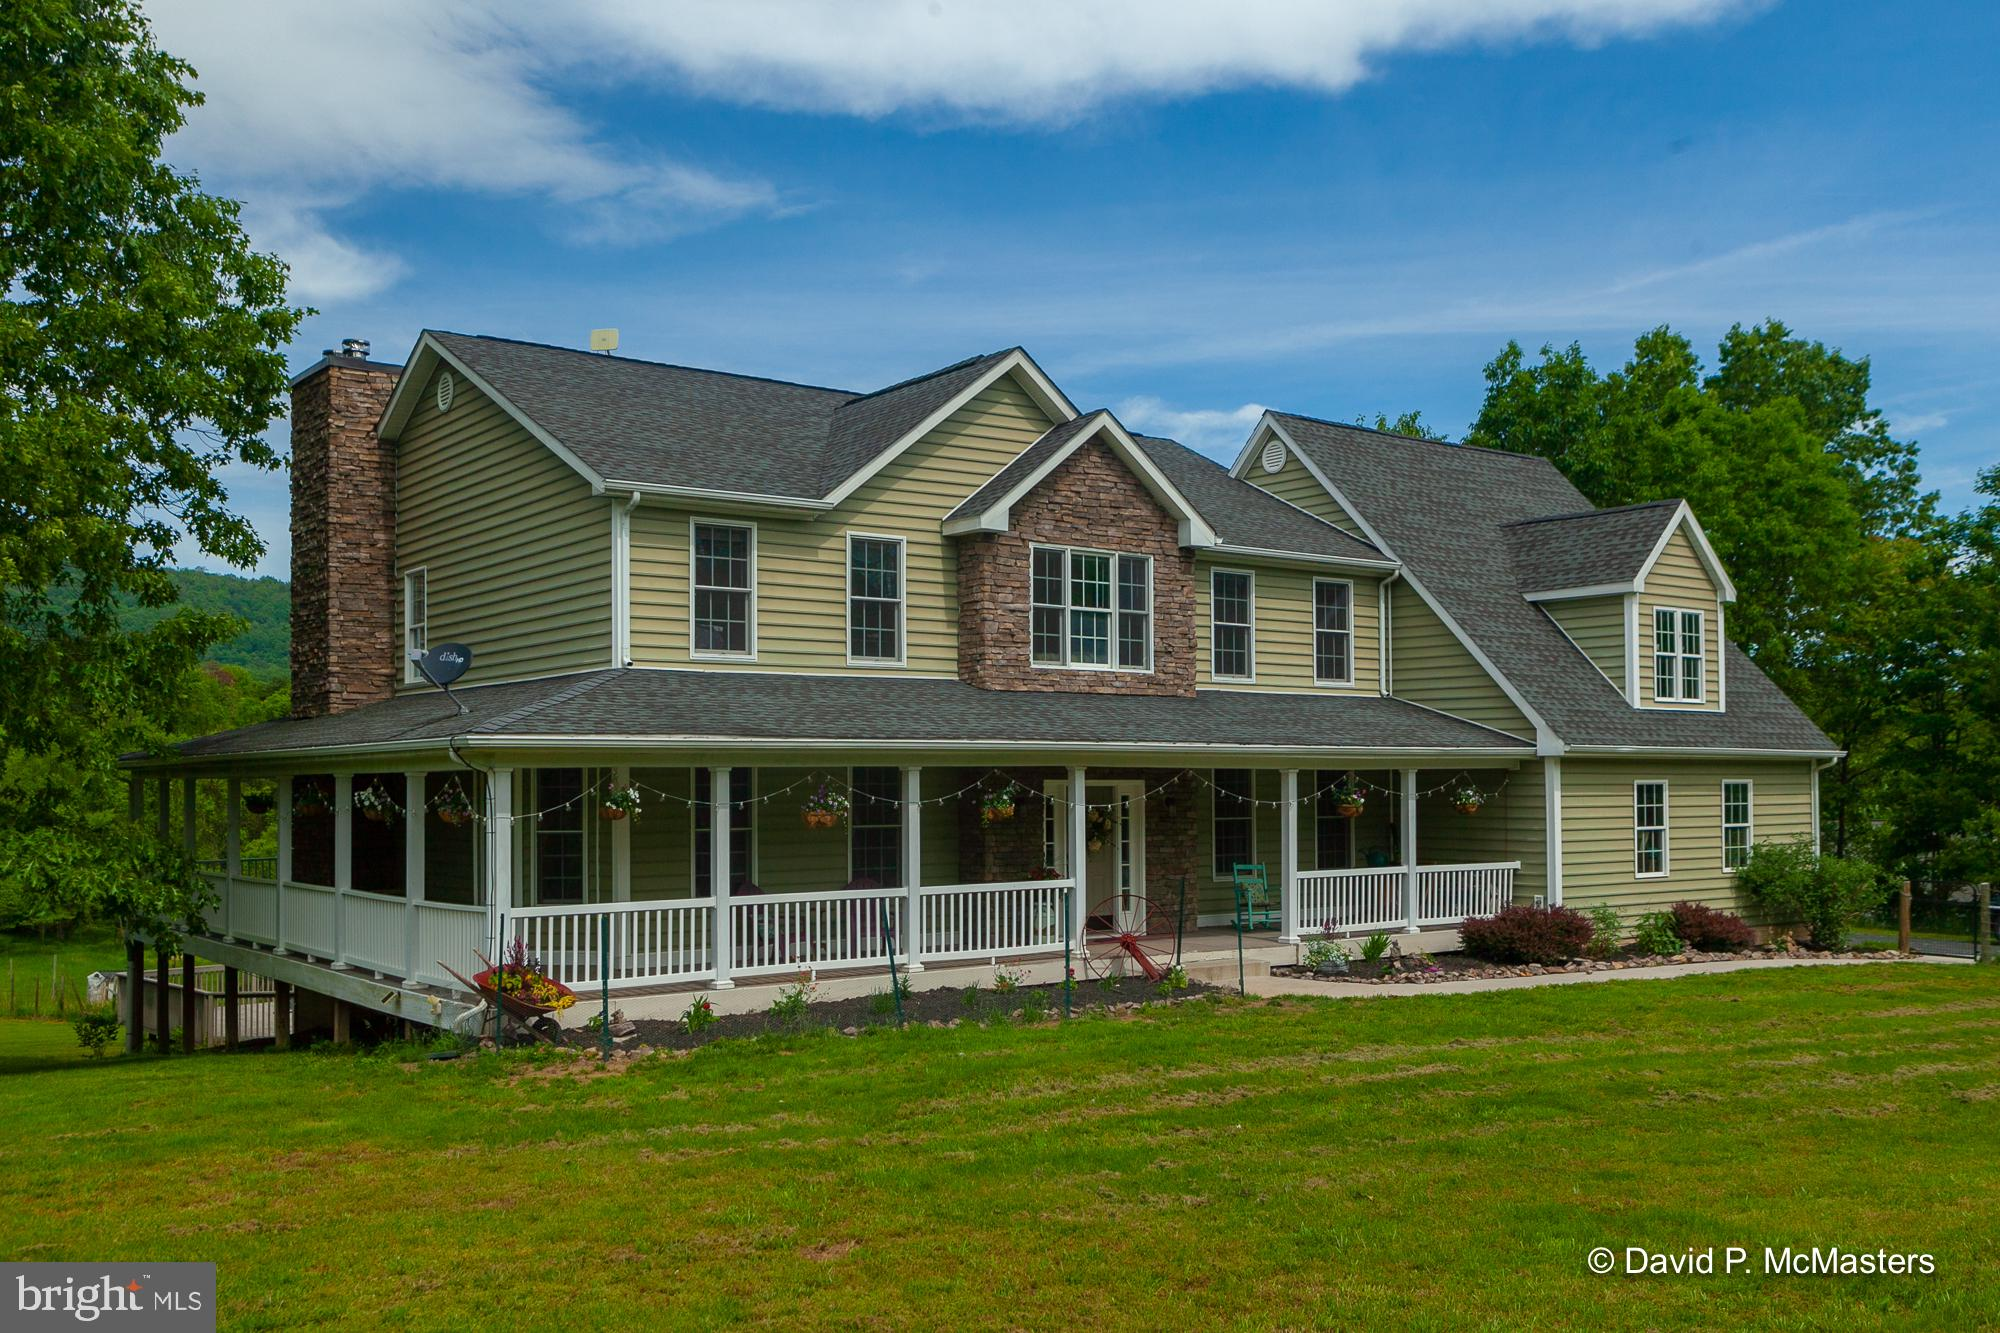 333 TURQUOISE DRIVE, HEDGESVILLE, WV 25427